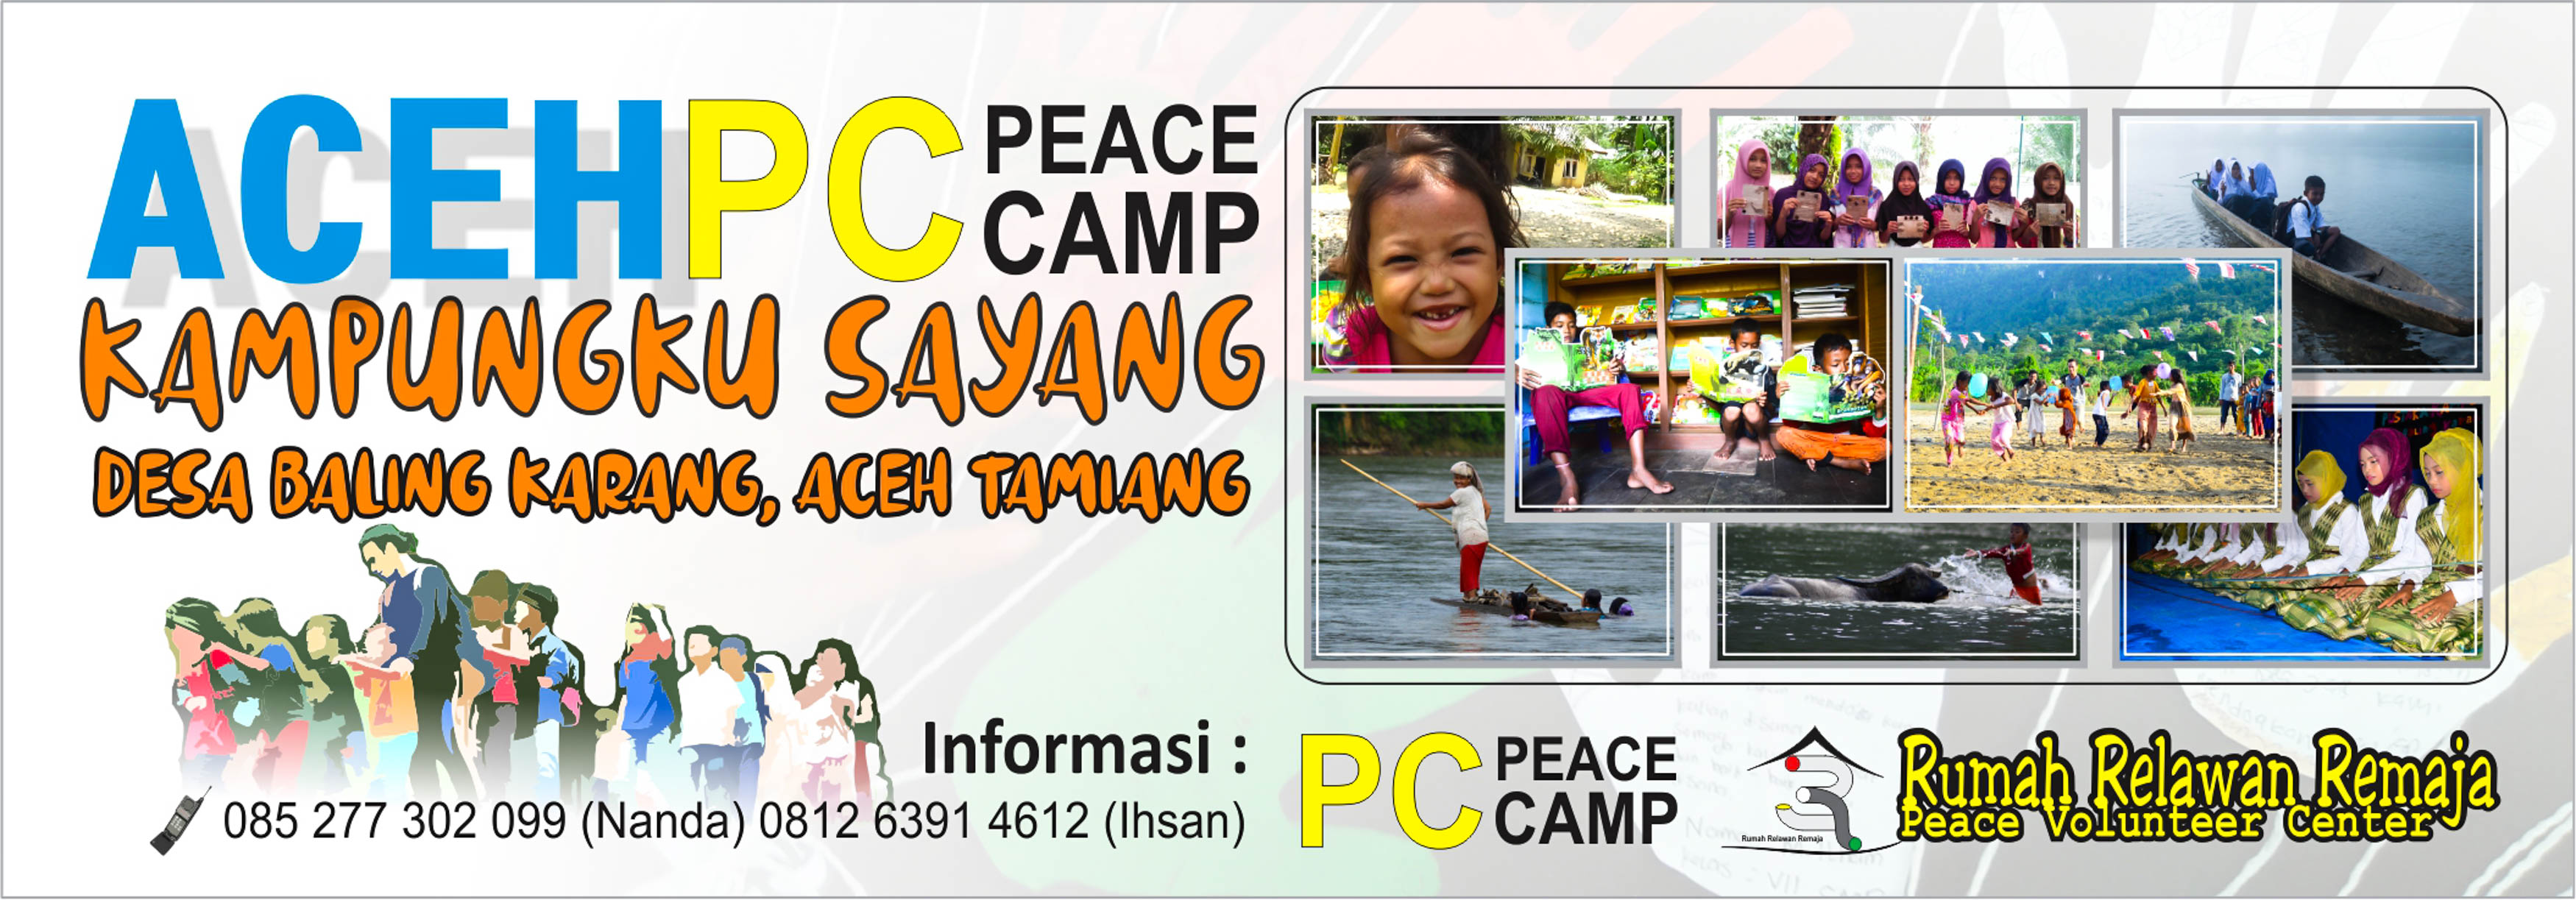 Formulir Aceh Peace Camp 2019